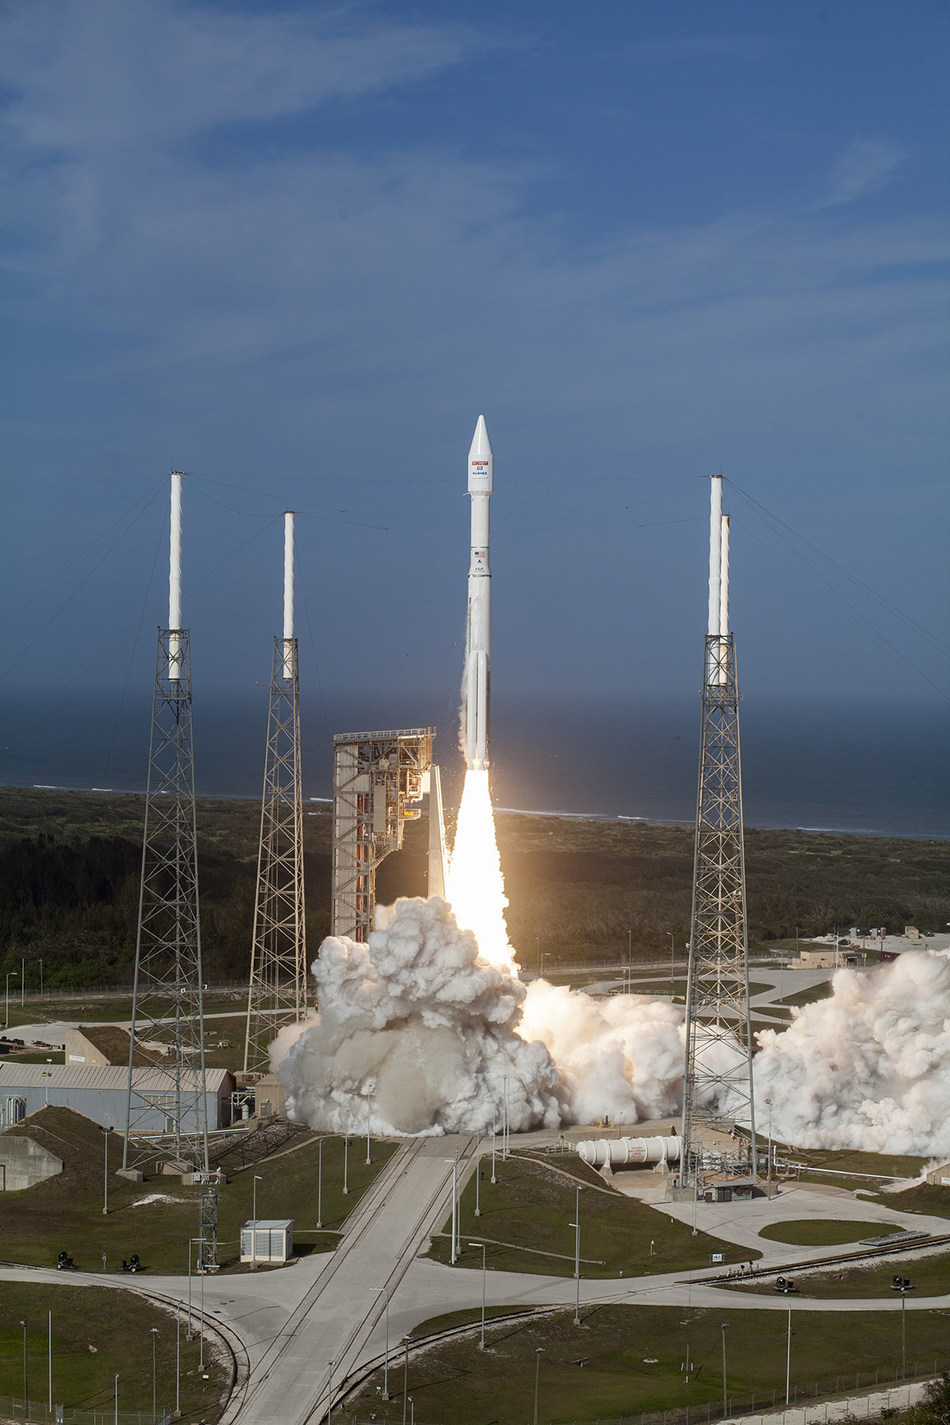 Lockheed Martin Commercial Launch Services launches EchoStar XIX aboard an Atlas V 431 rocket. The satellite will provide HughesNet Gen5 high-speed satellite Internet service to rural areas across North America. Photo courtesy of Lockheed Martin and United Launch Alliance.